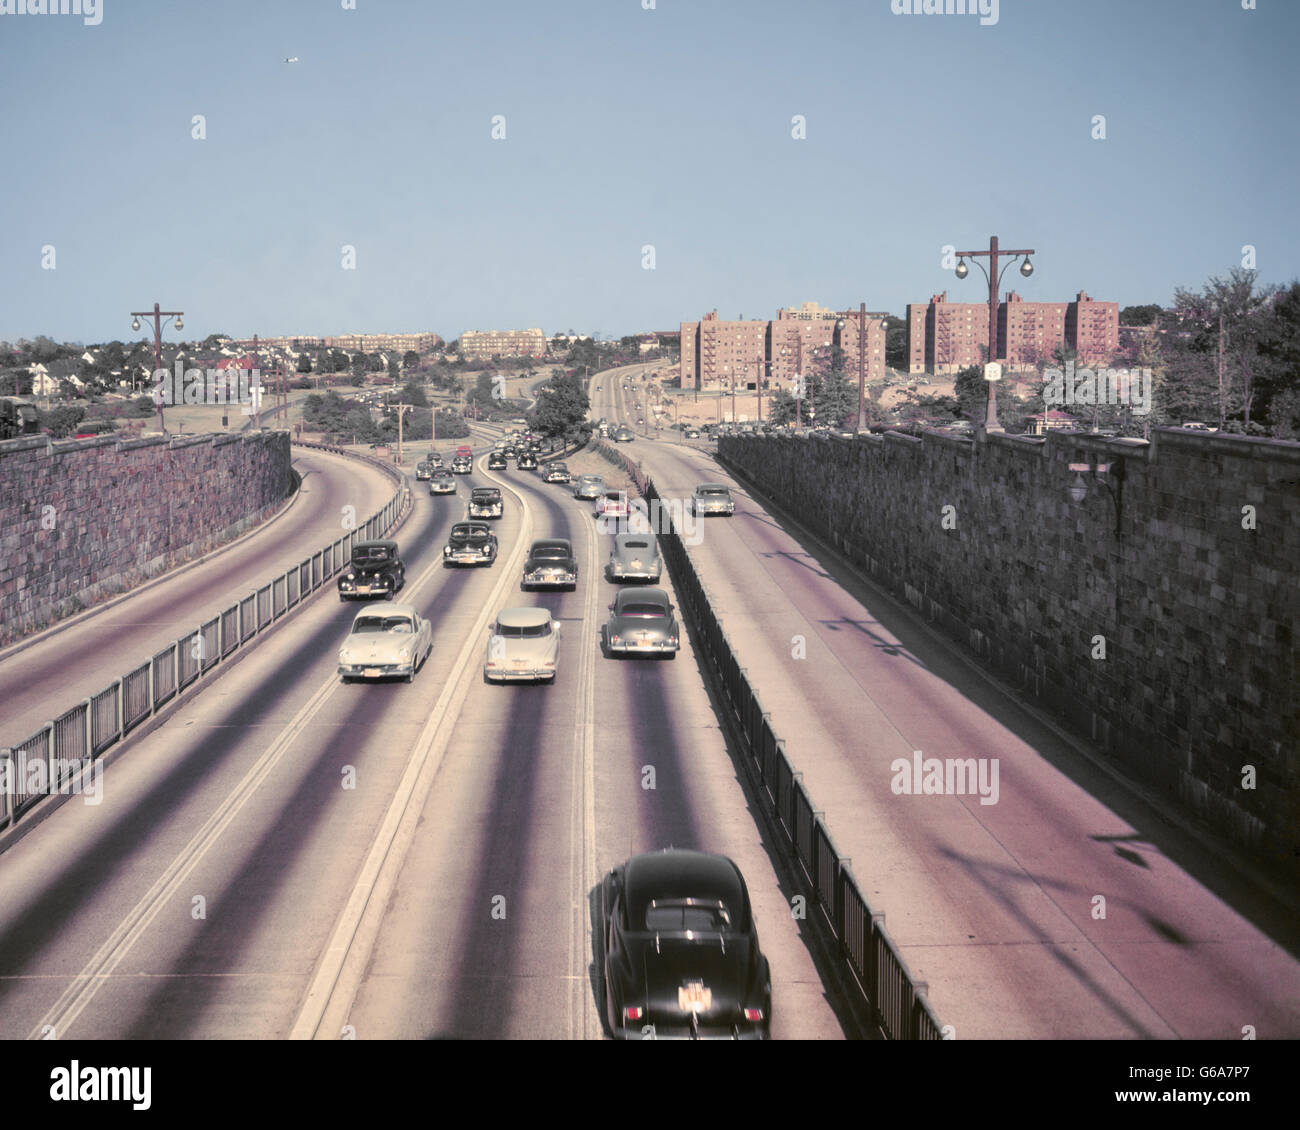 1950s CARS TRAFFIC ON ROUTE 25 QUEENS BOROUGH LONG ISLAND NEW YORK CITY USA - Stock Image